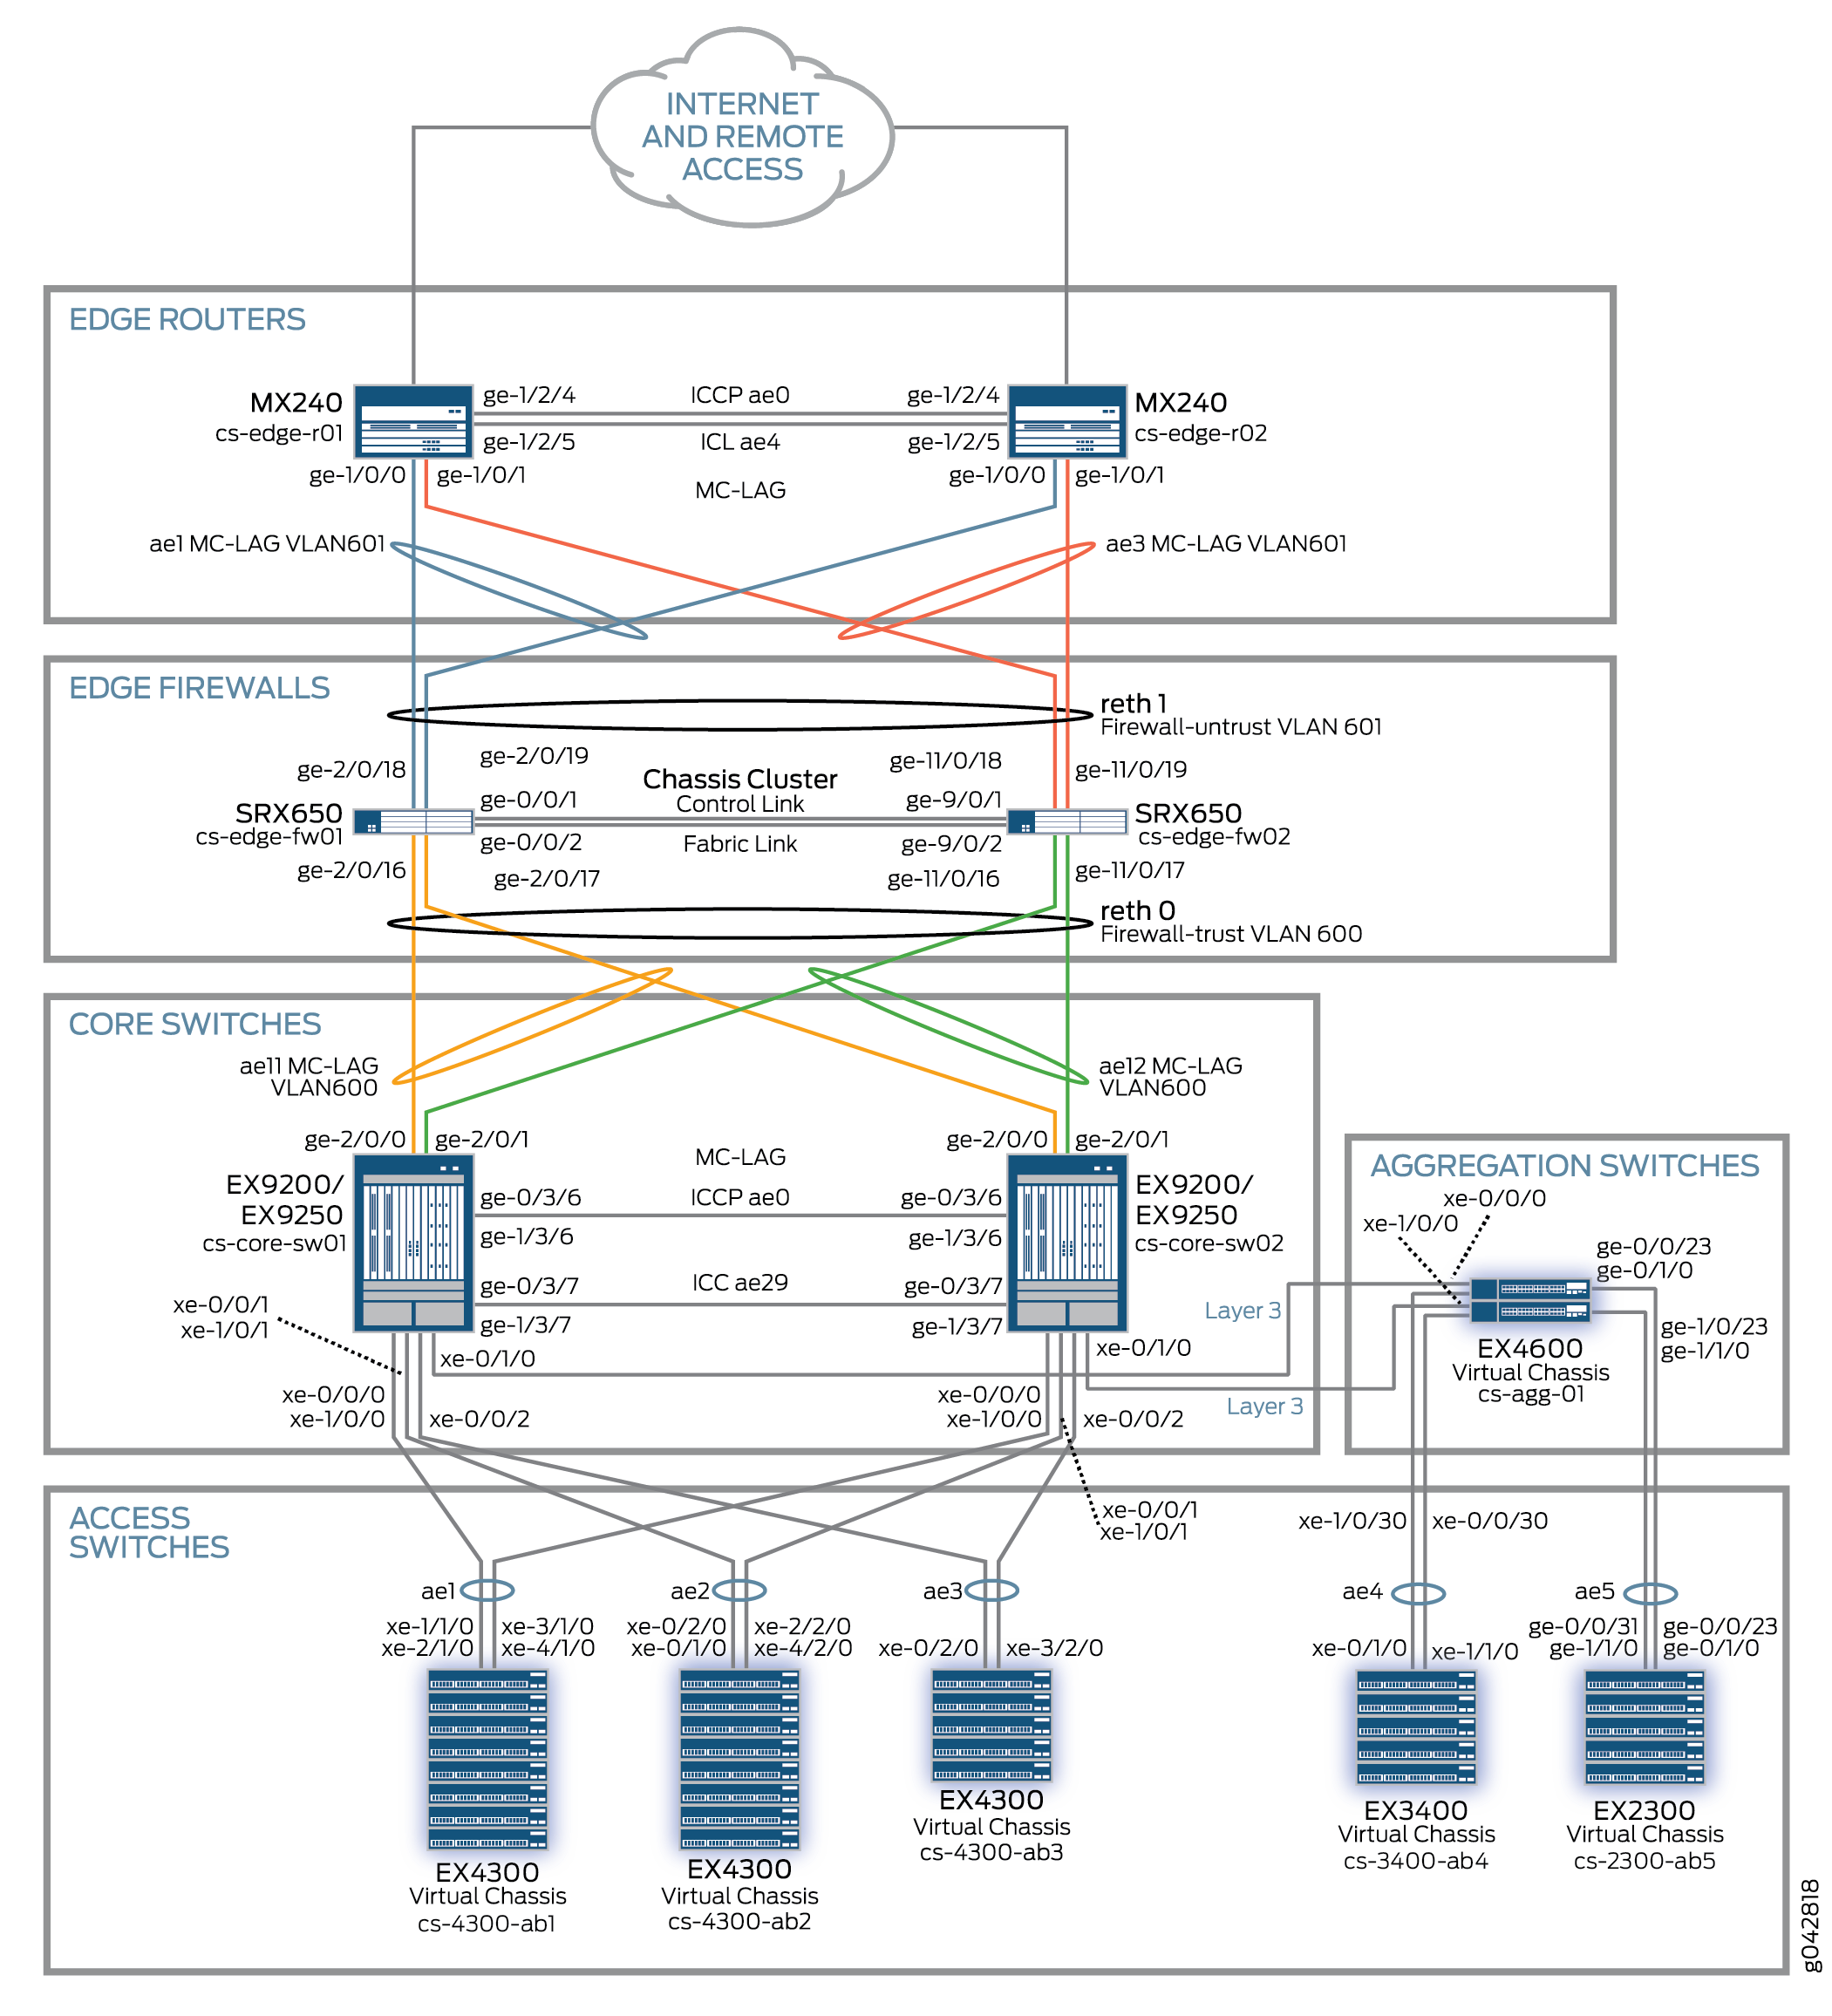 Test Topology for the Midsize Enterprise Campus